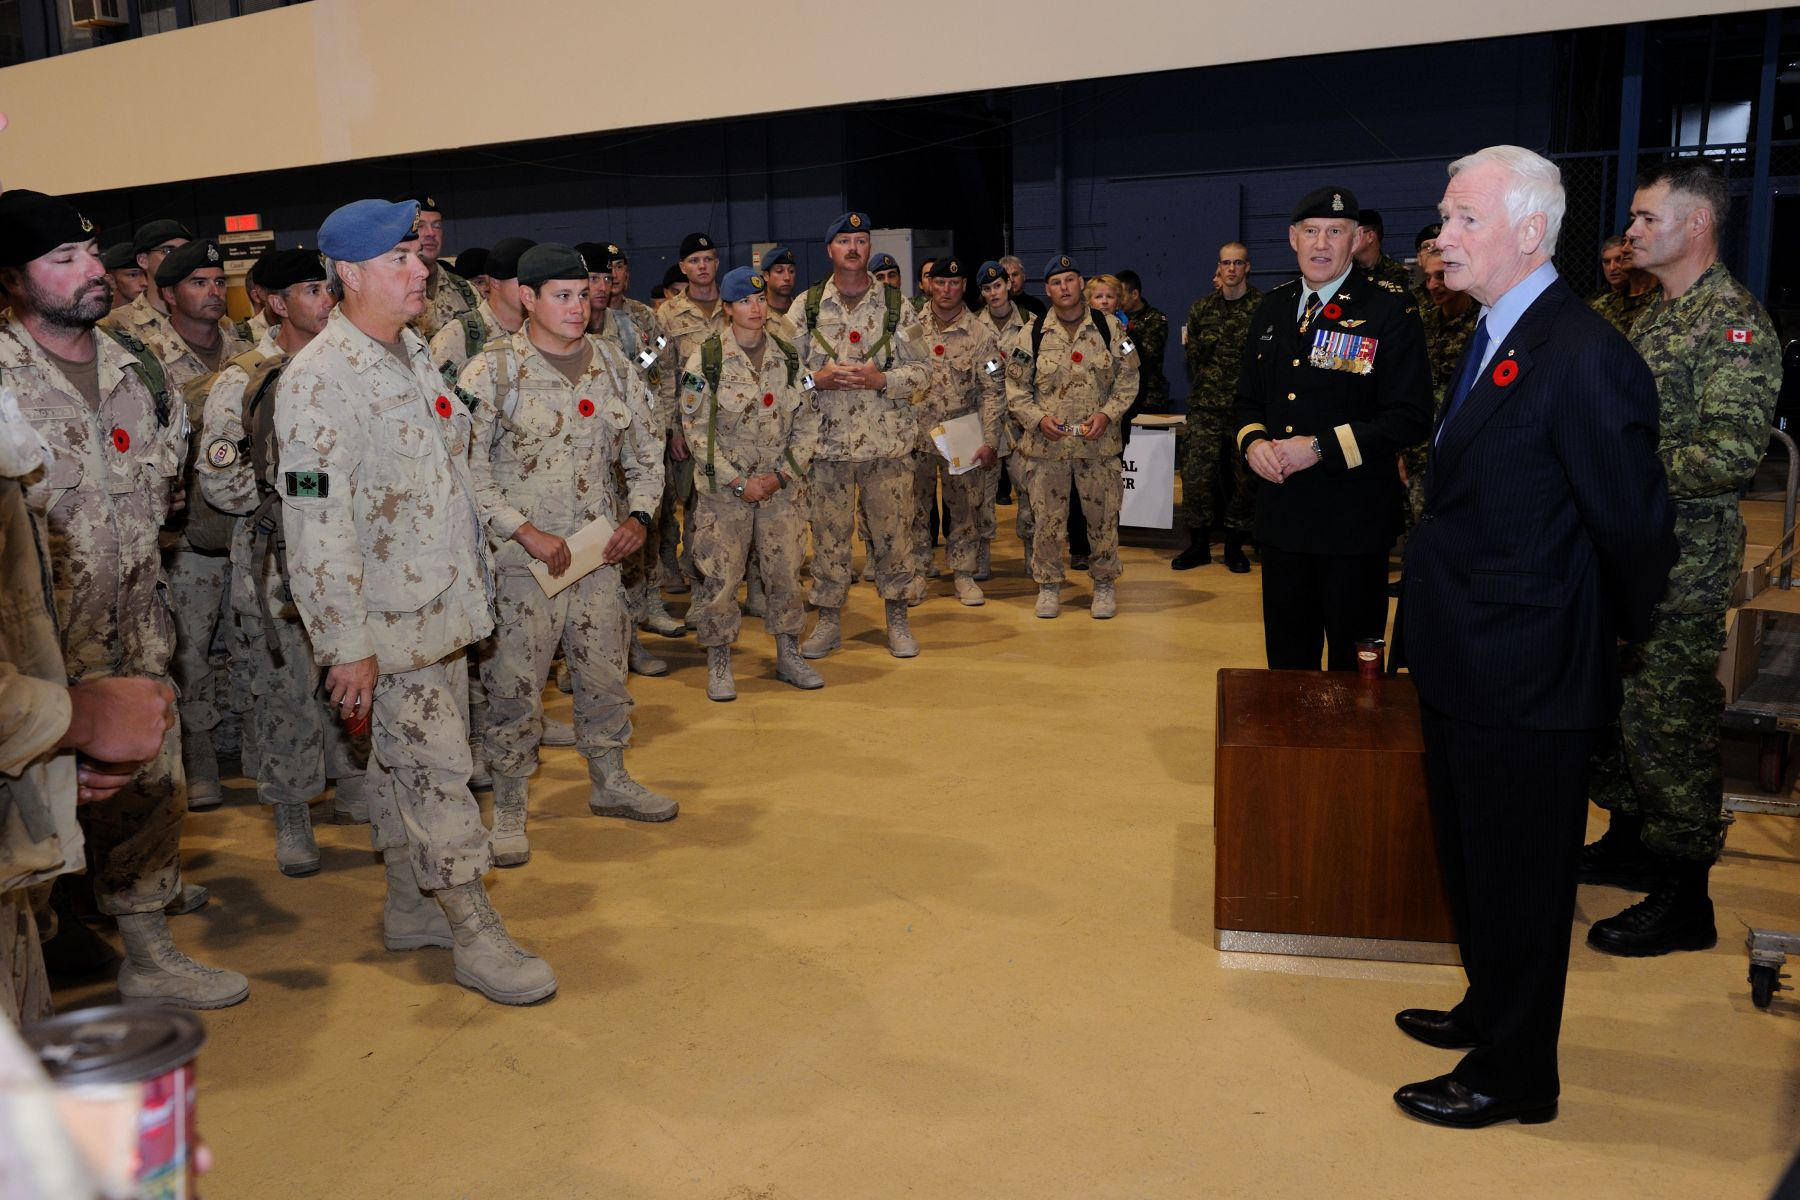 The Governor General took the time to address all returning members of the Canadian Forces.